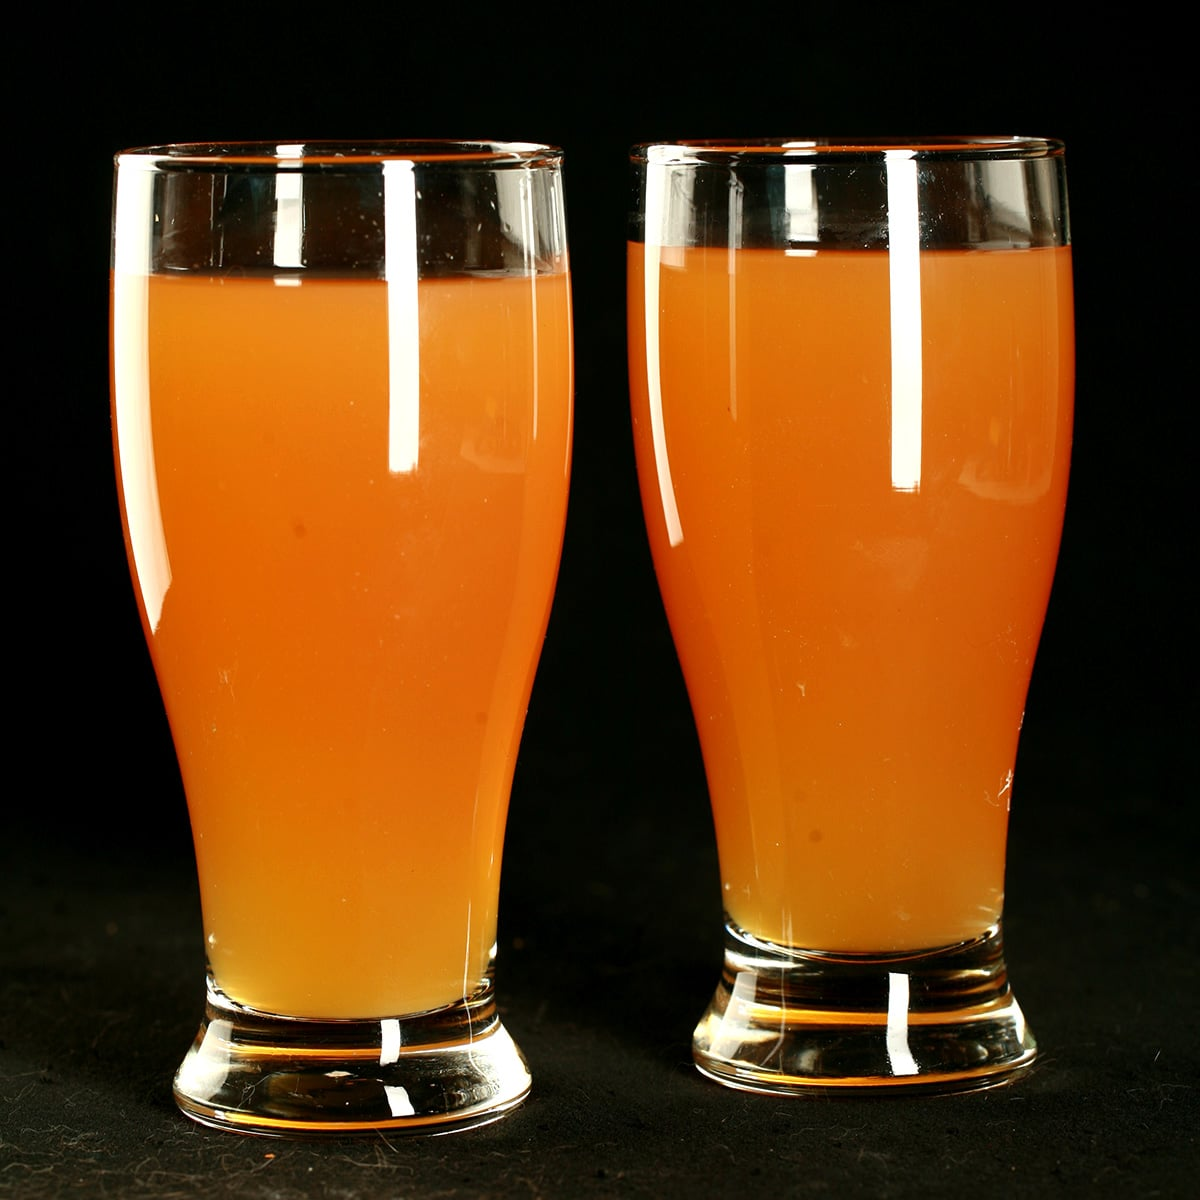 Two glasses of homemade Beep Drink - a orange coloured juice drink - against a black background.